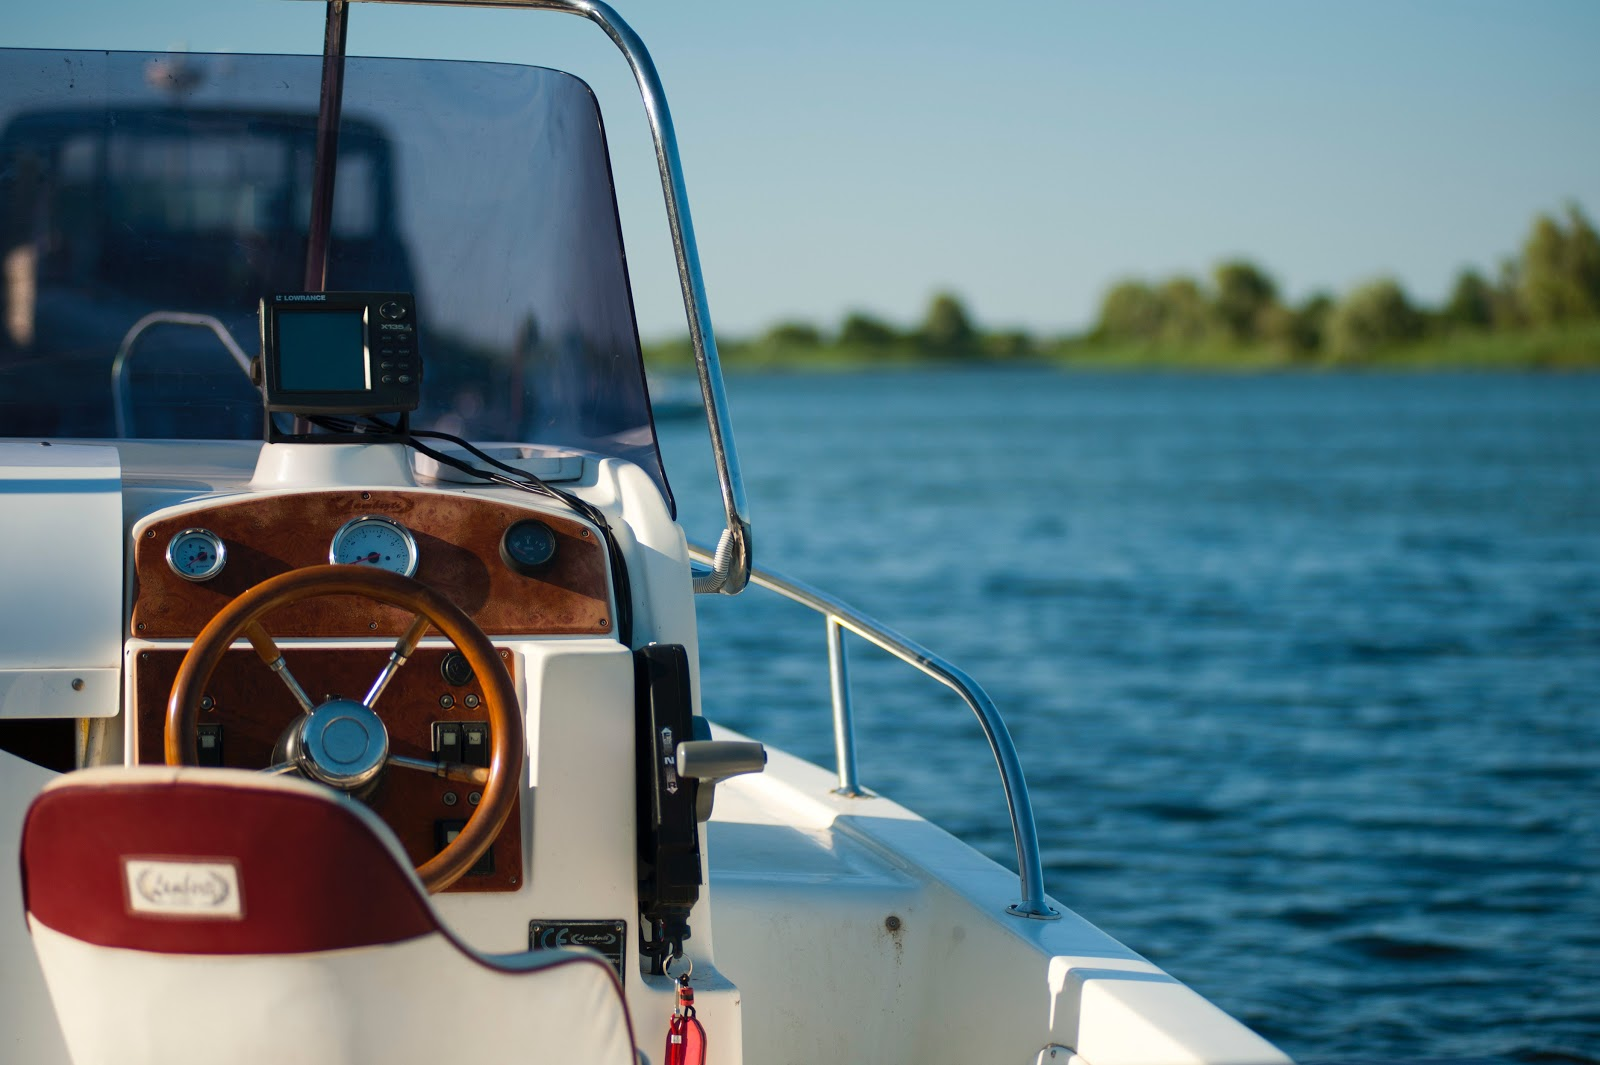 View from driver's seat of a boat